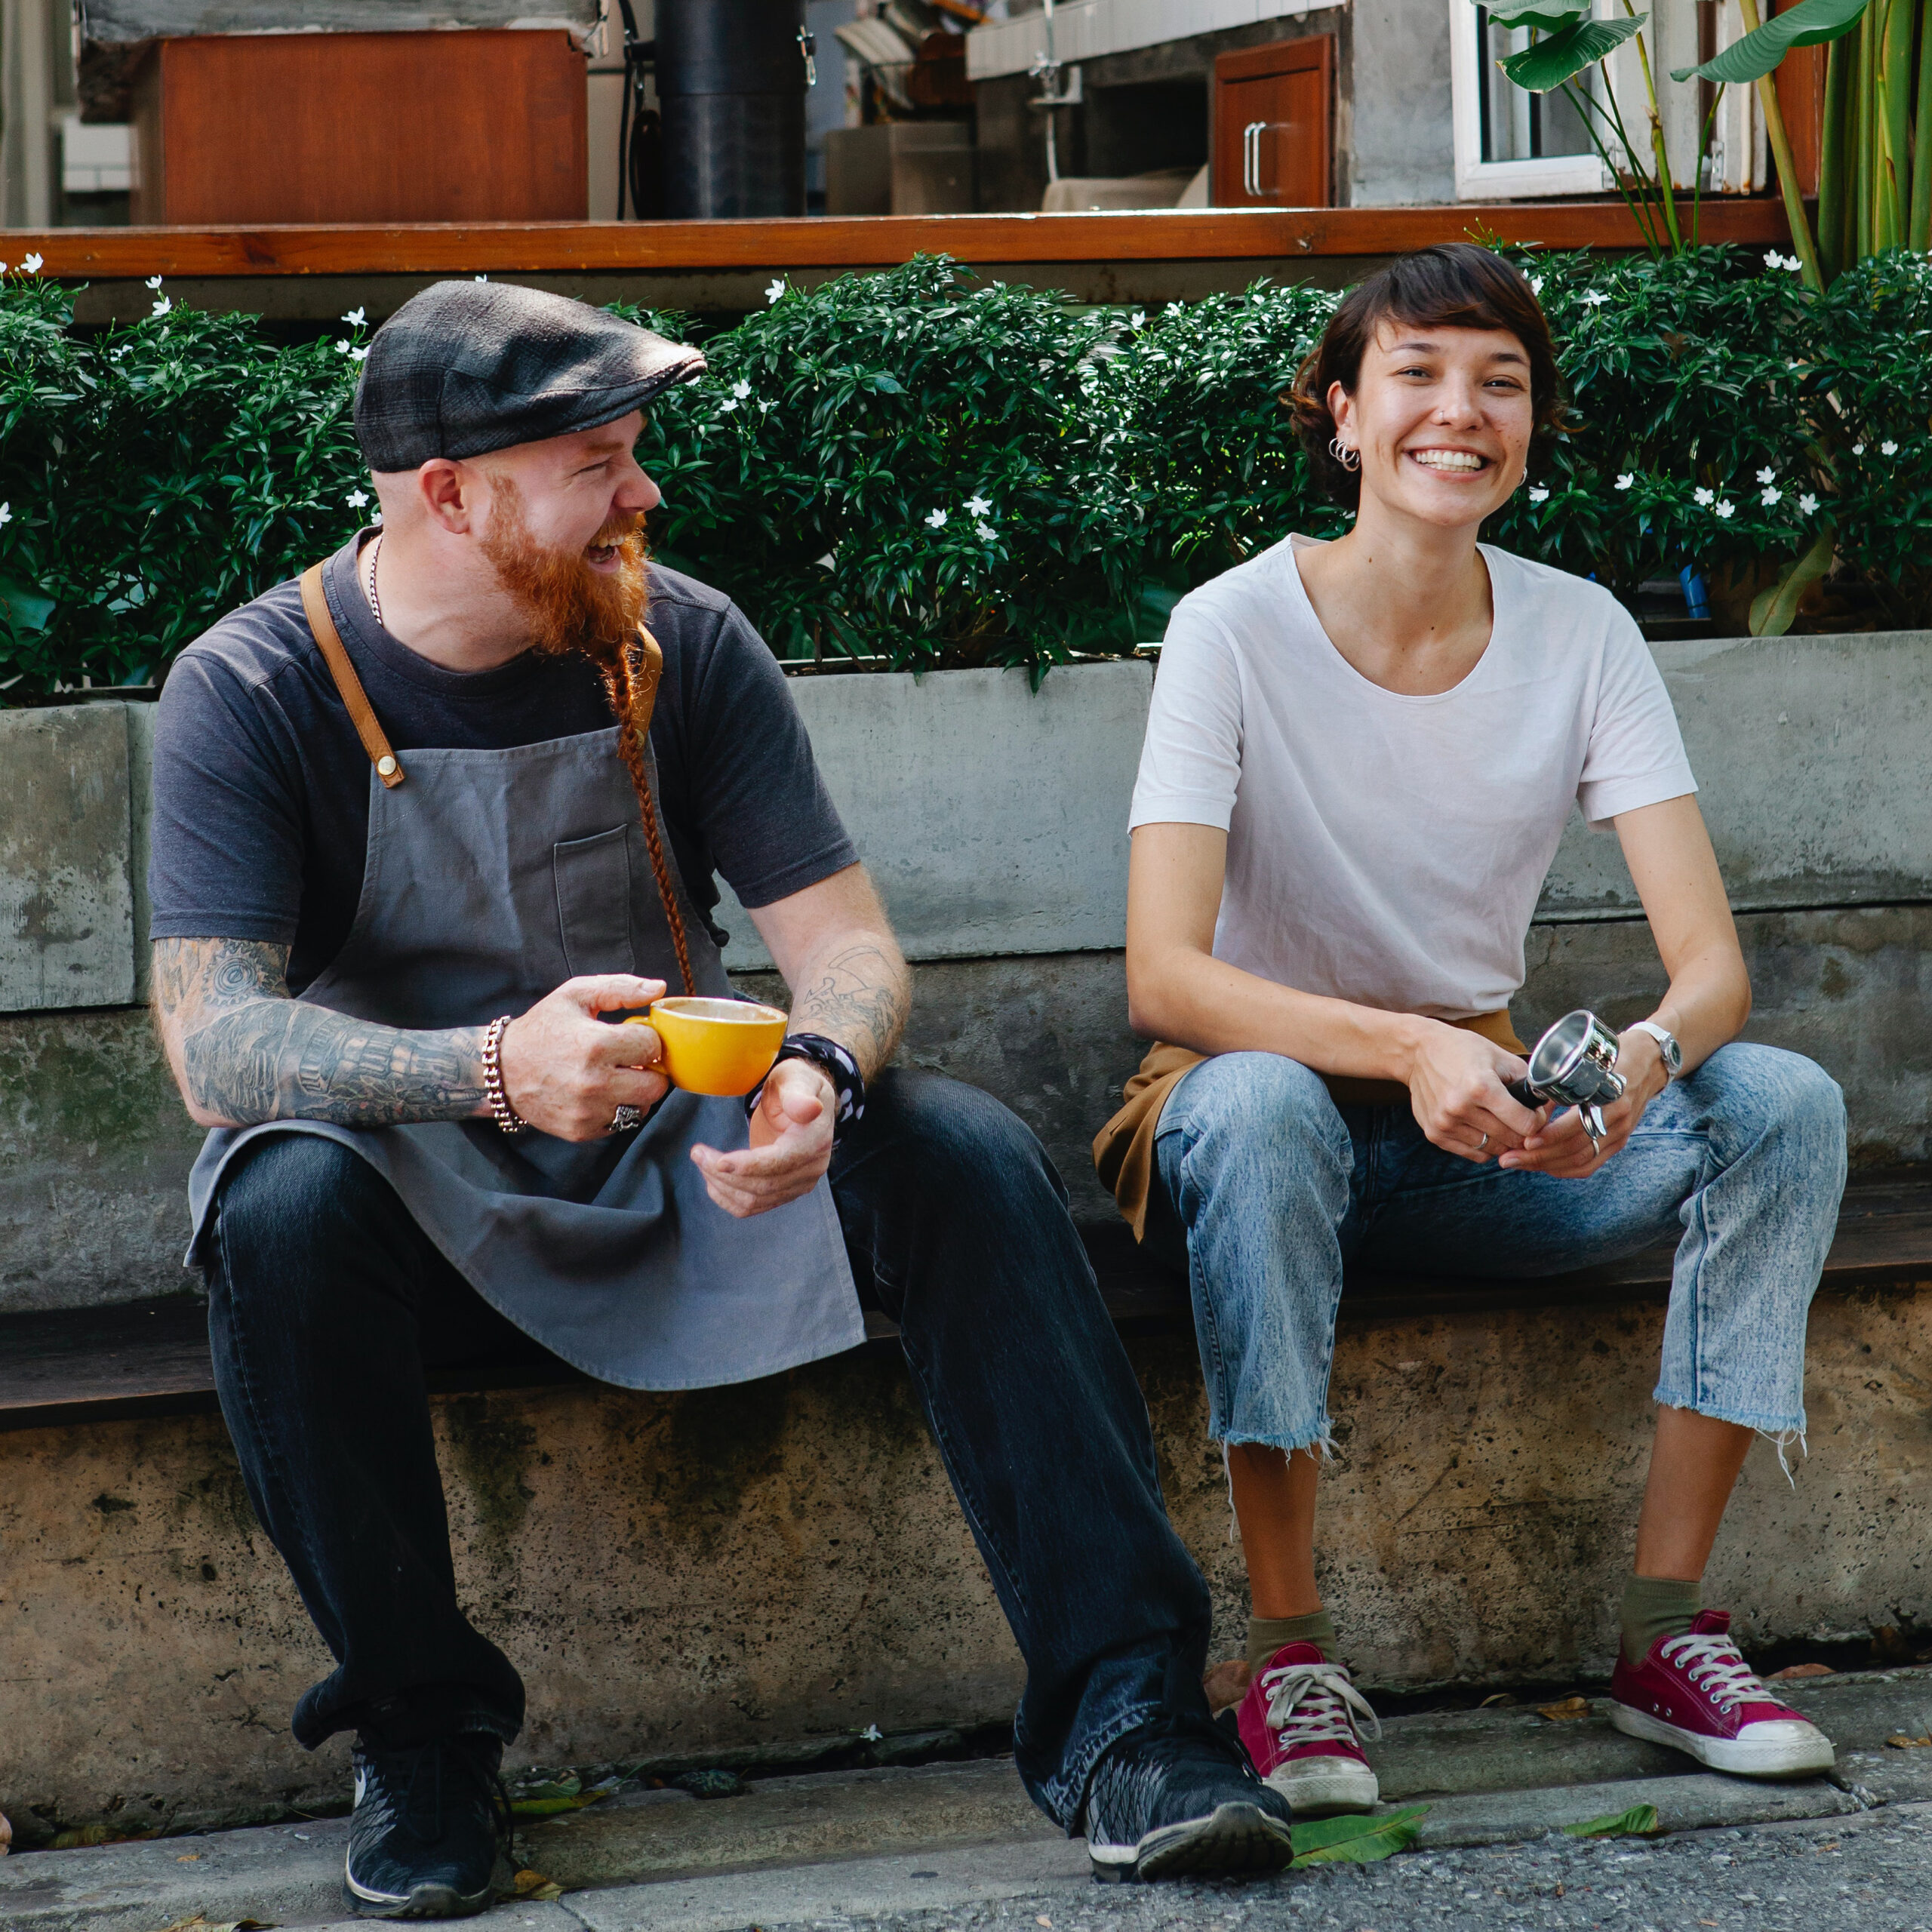 a man and woman sitting down drinking coffee and smiling for the camera